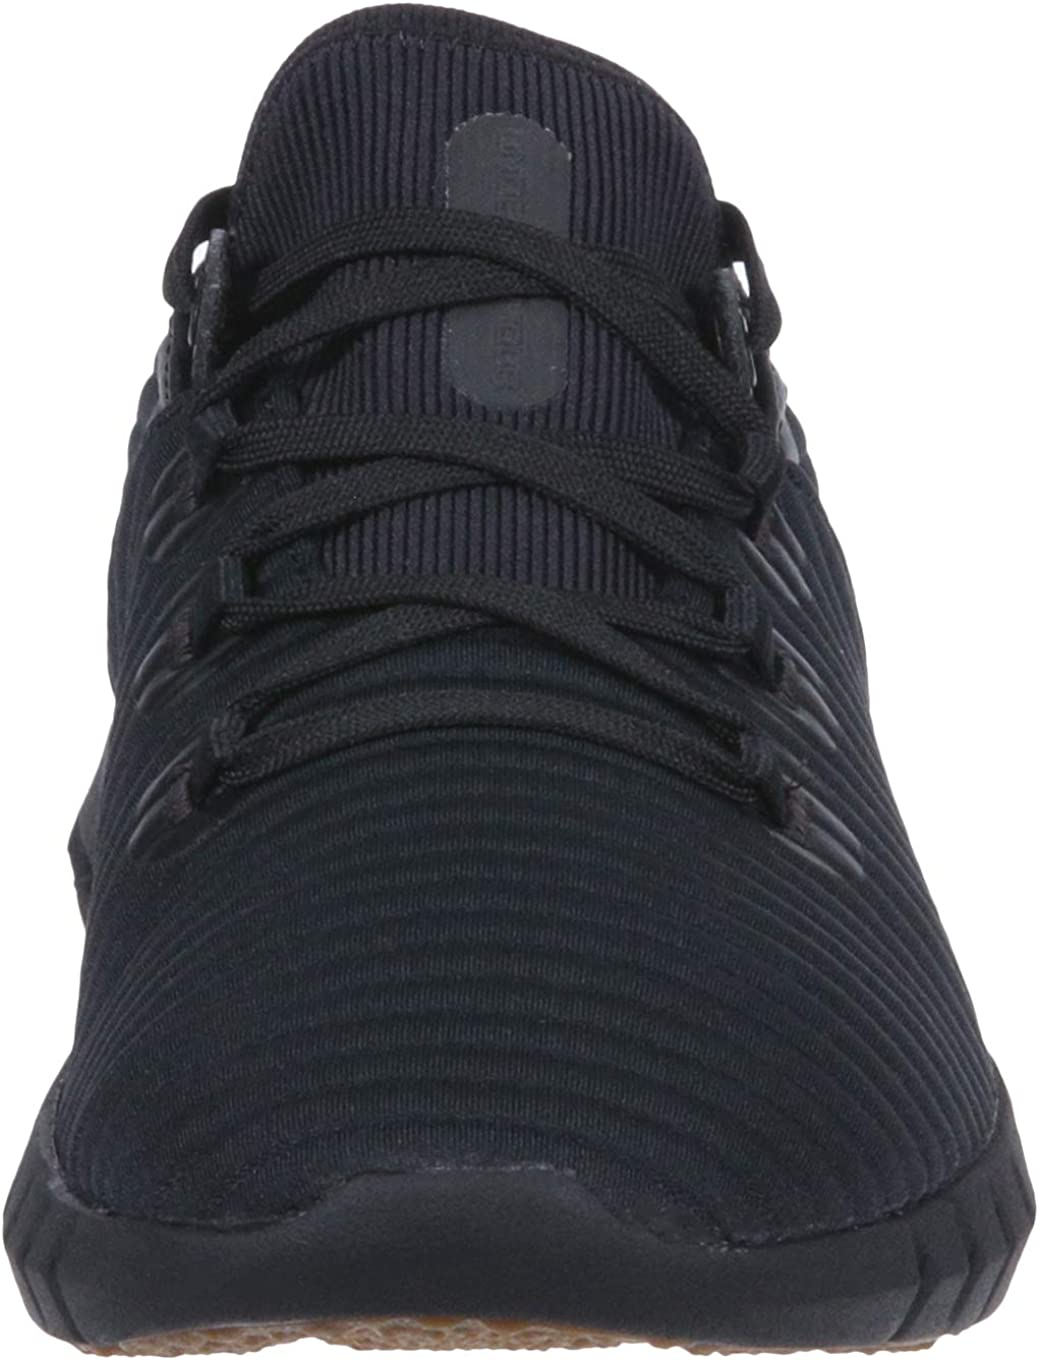 Under Armour Mens HOVR SLK Ln Sneaker